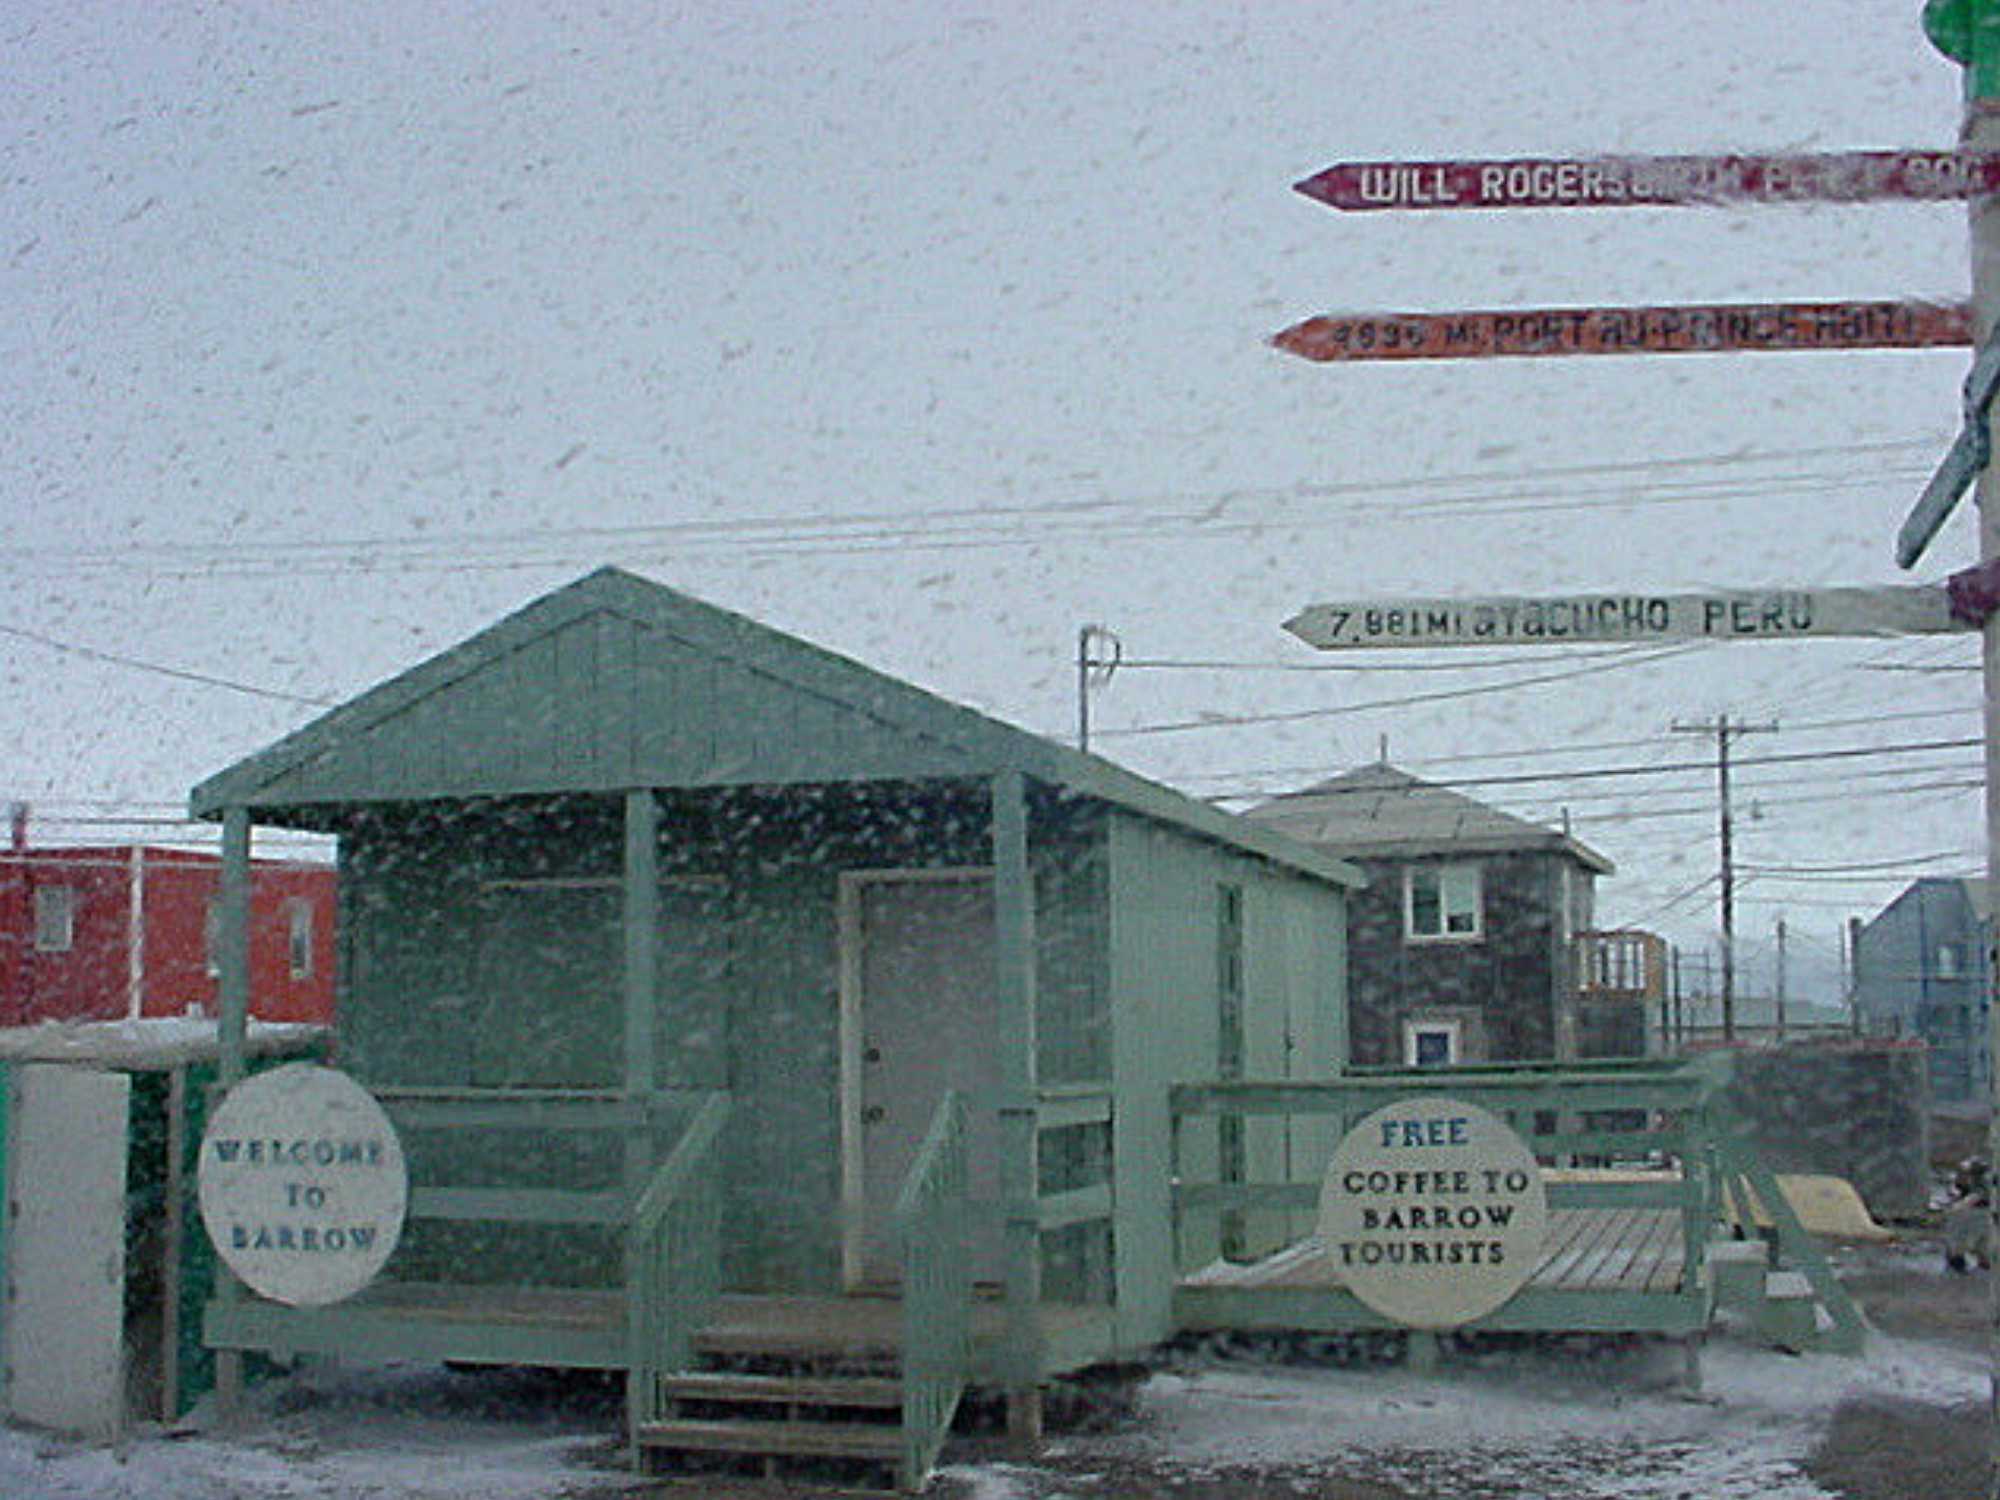 Where to find local guidance while in Barrow, Alaska?